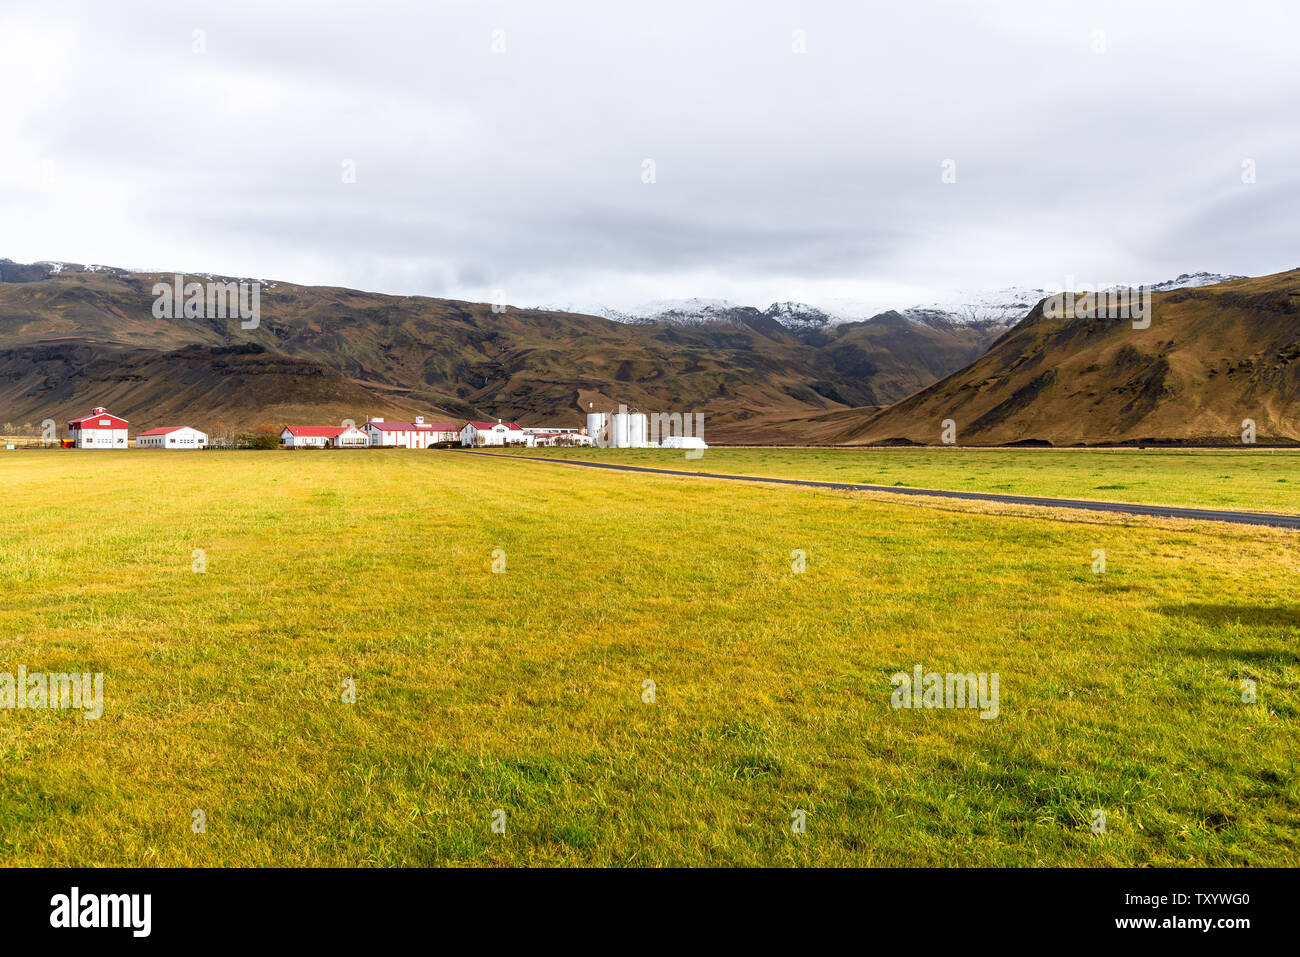 Meadow with farm buildings at the far edge and mountains in background in Iceland on a sunny fall day - Stock Image